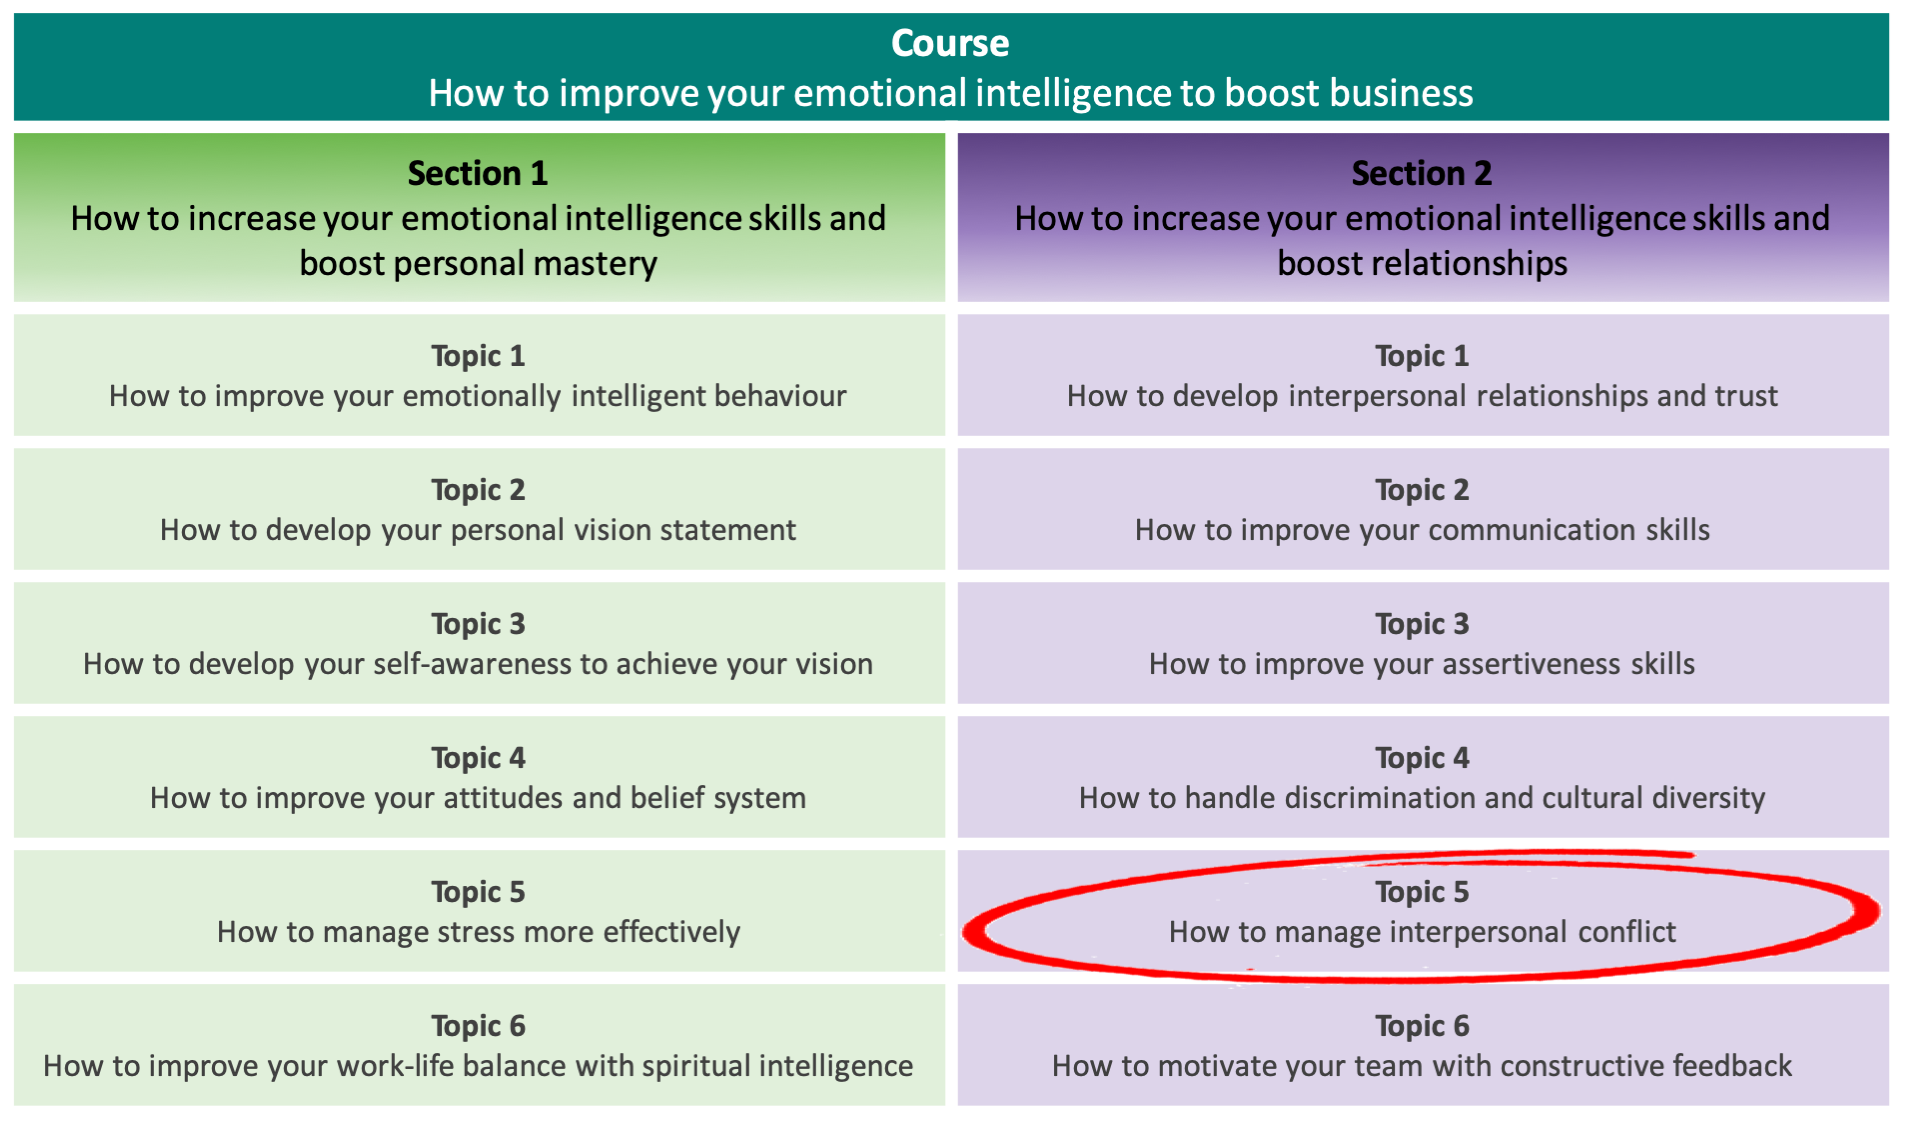 How to manage interpersonal conflict